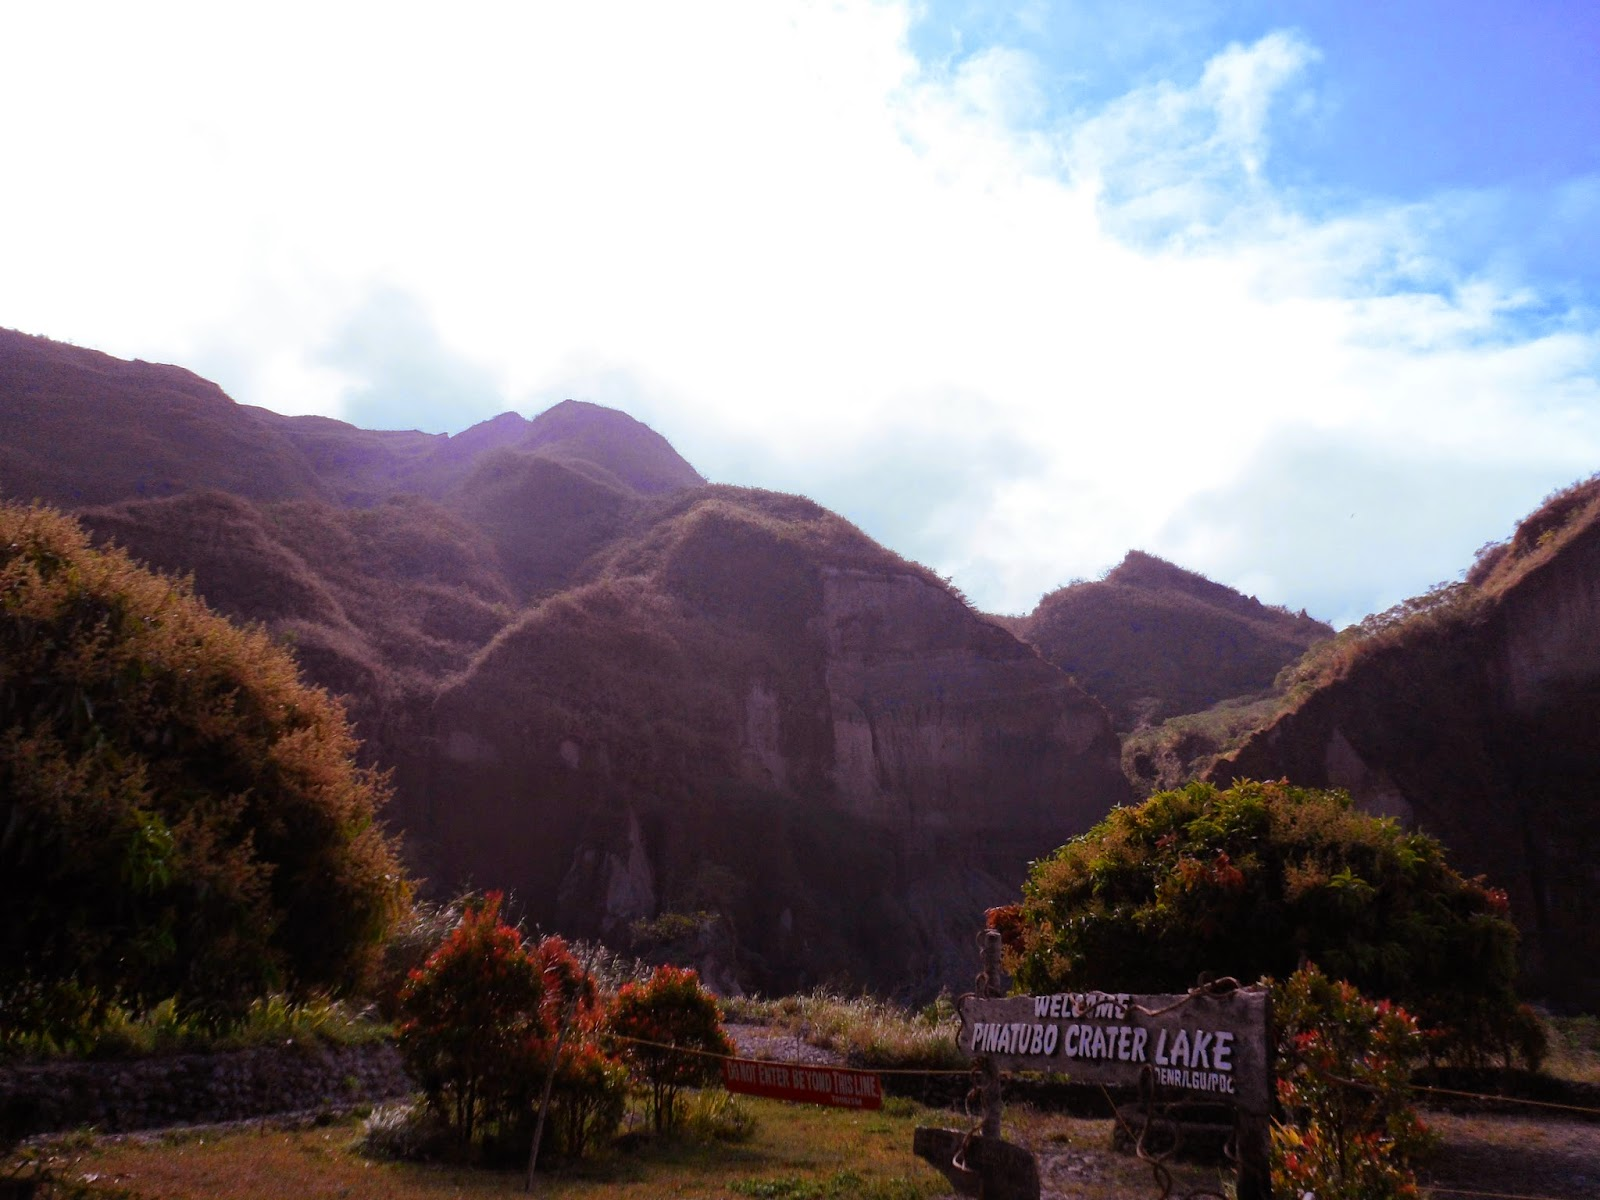 Mount Pinatubo Crater Lake